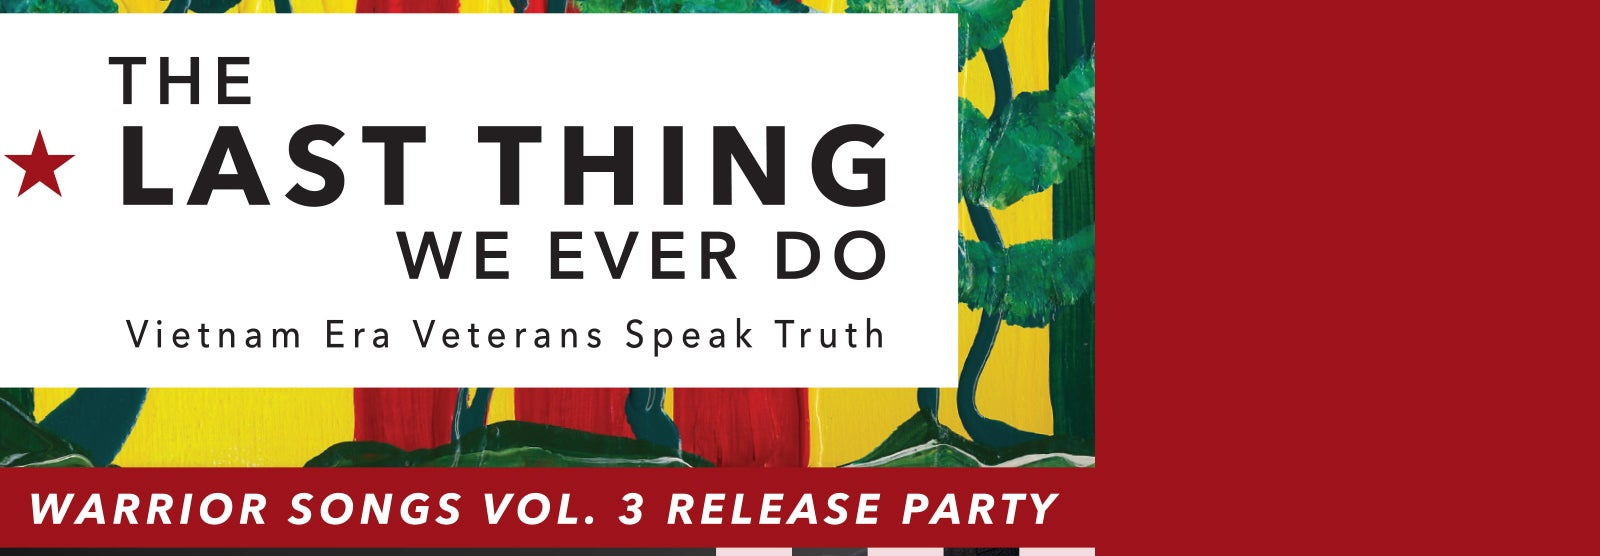 Warrior Songs: The Last Thing We Ever Do Release Party